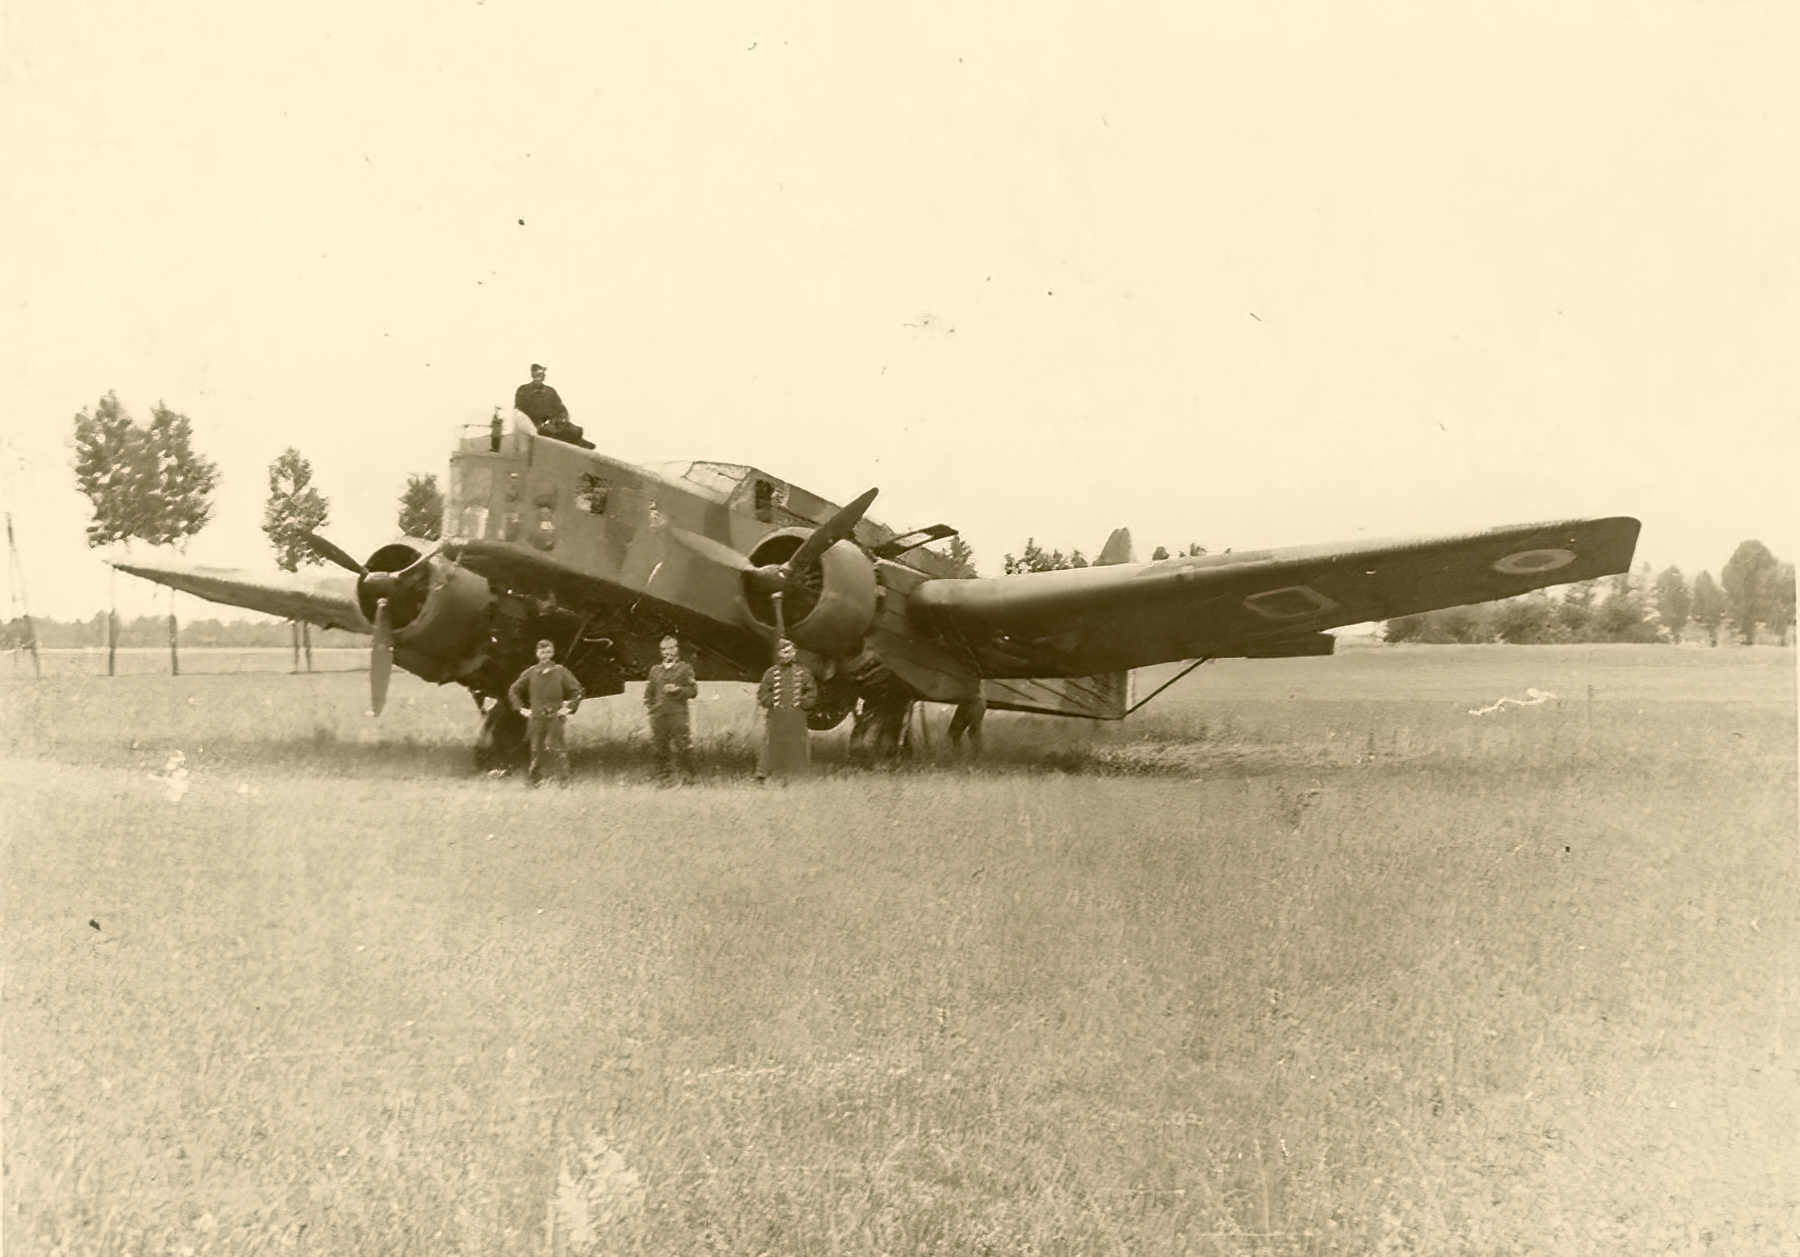 French Airforce Bloch MB 210 stands intact after the fall of France Jun 1940 ebay 01